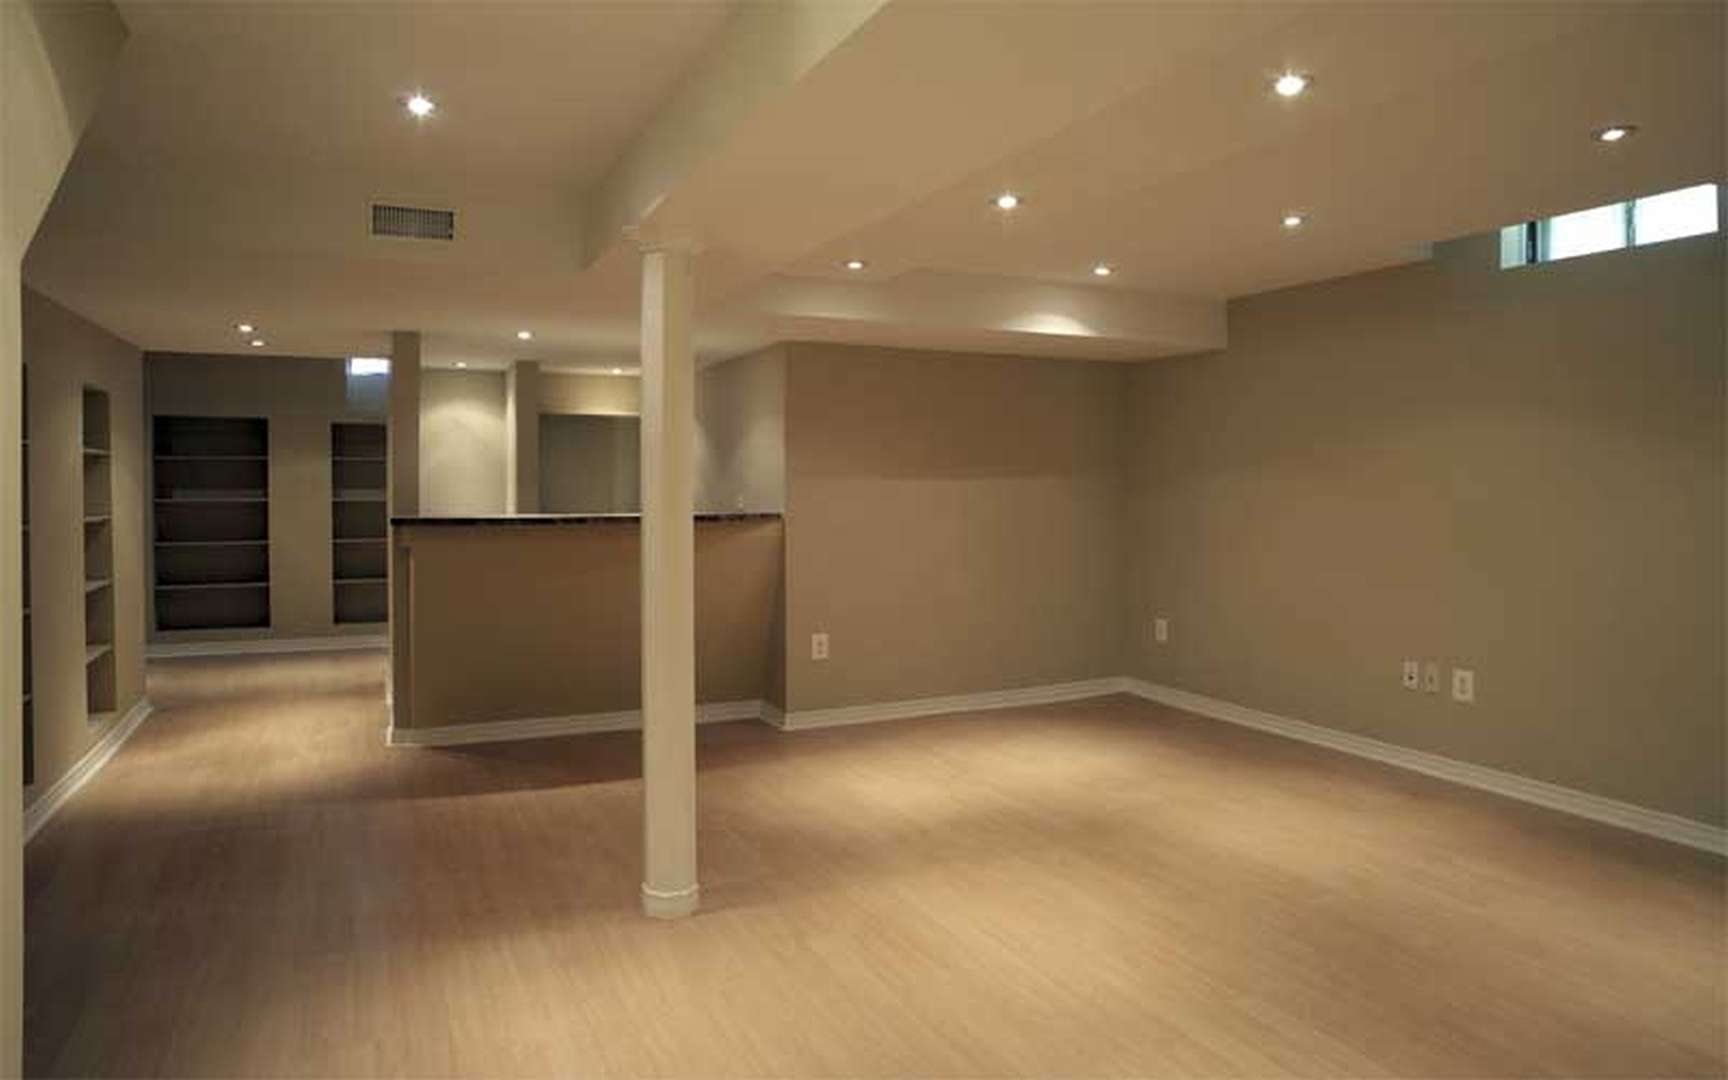 West Orange NJ 07052 Basement RemodelingFinishing Contractor